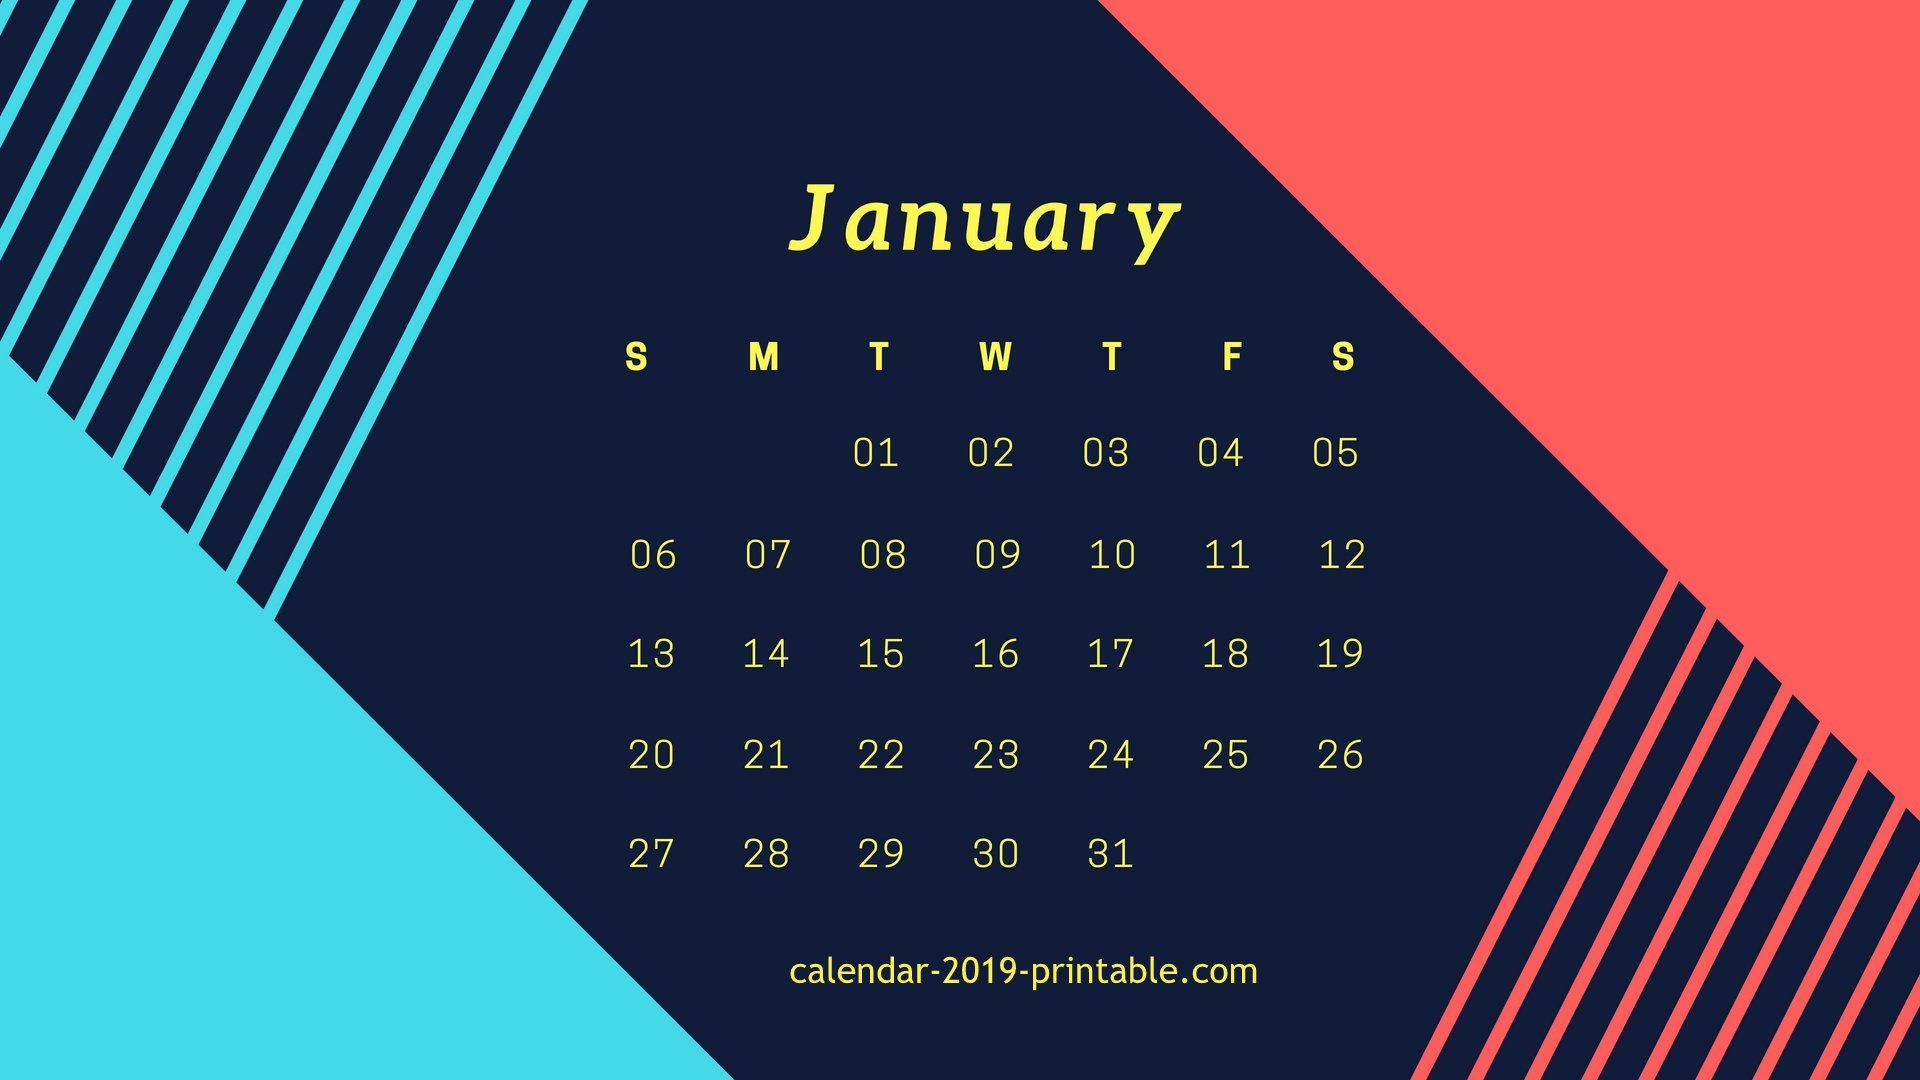 Beautiful January 2019 Desktop Wallpaper Calendar Desktop Wallpaper Calendar Desktop Wallpaper Computer Wallpaper Desktop Wallpapers